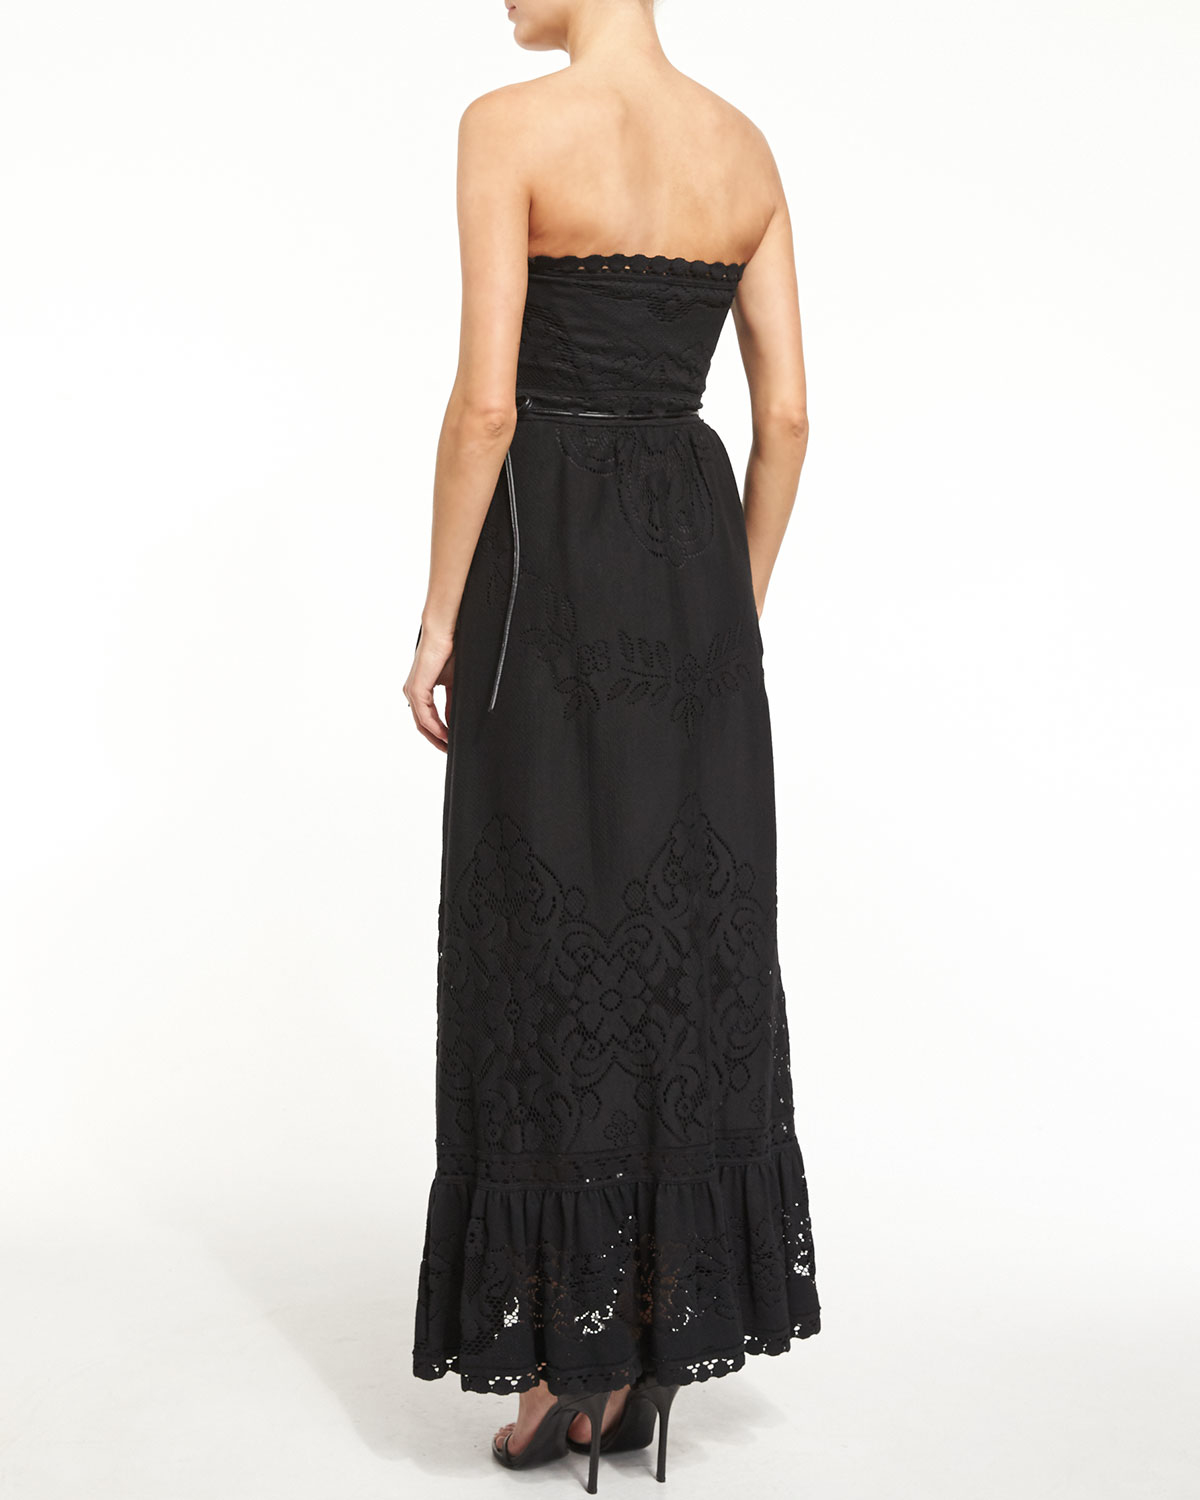 Lyst - Valentino Strapless Lace Gown W/pockets in Black